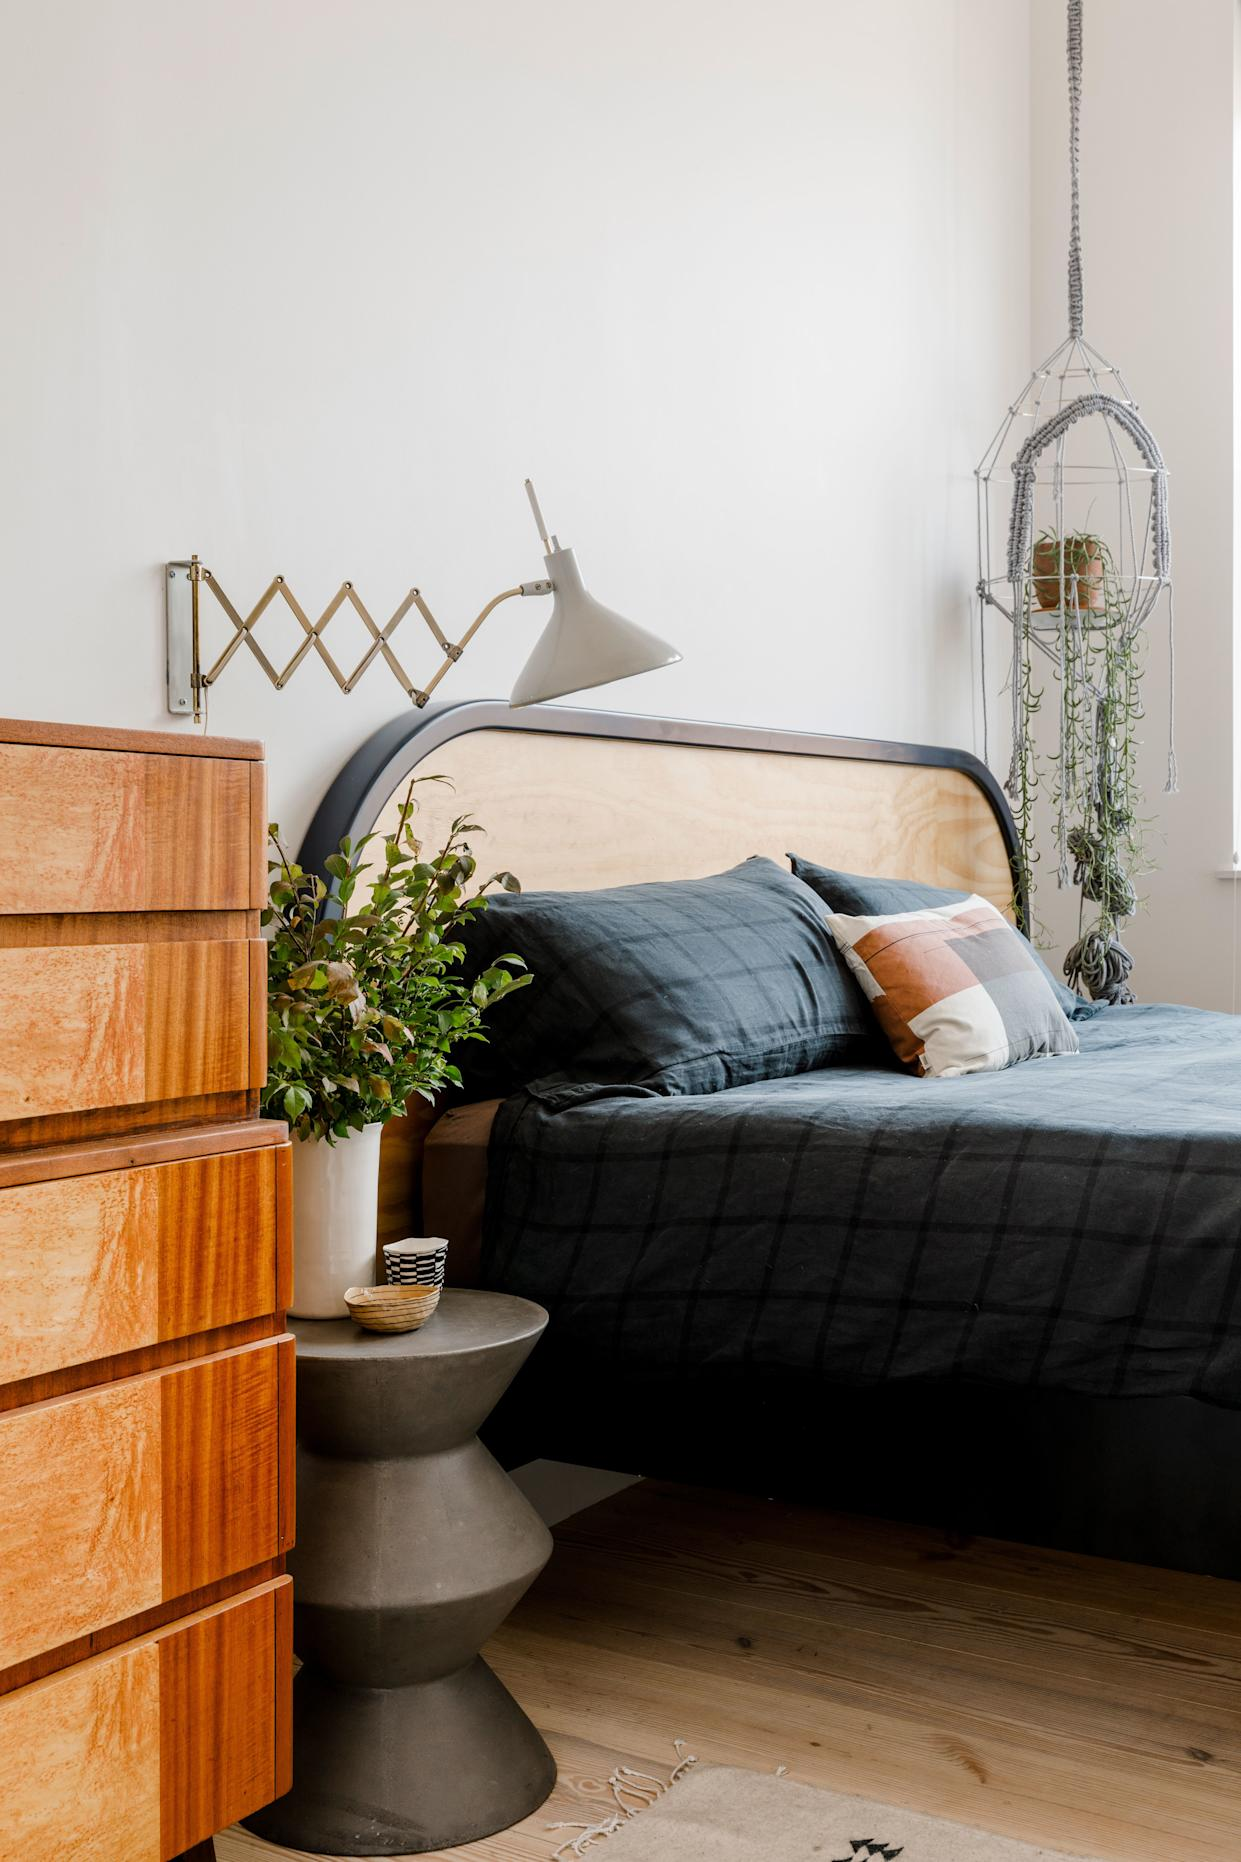 """<div class=""""caption""""> The lamp in <a href=""""https://www.architecturaldigest.com/story/this-designers-bed-stuy-apartment-is-meant-for-gatherings?mbid=synd_yahoo_rss"""" rel=""""nofollow noopener"""" target=""""_blank"""" data-ylk=""""slk:Matthew Stewart's"""" class=""""link rapid-noclick-resp"""">Matthew Stewart's</a> bedroom used to belong to his grandparents, but it still looks good and works great too. </div> <cite class=""""credit"""">Photo: Max Burkhalter</cite>"""